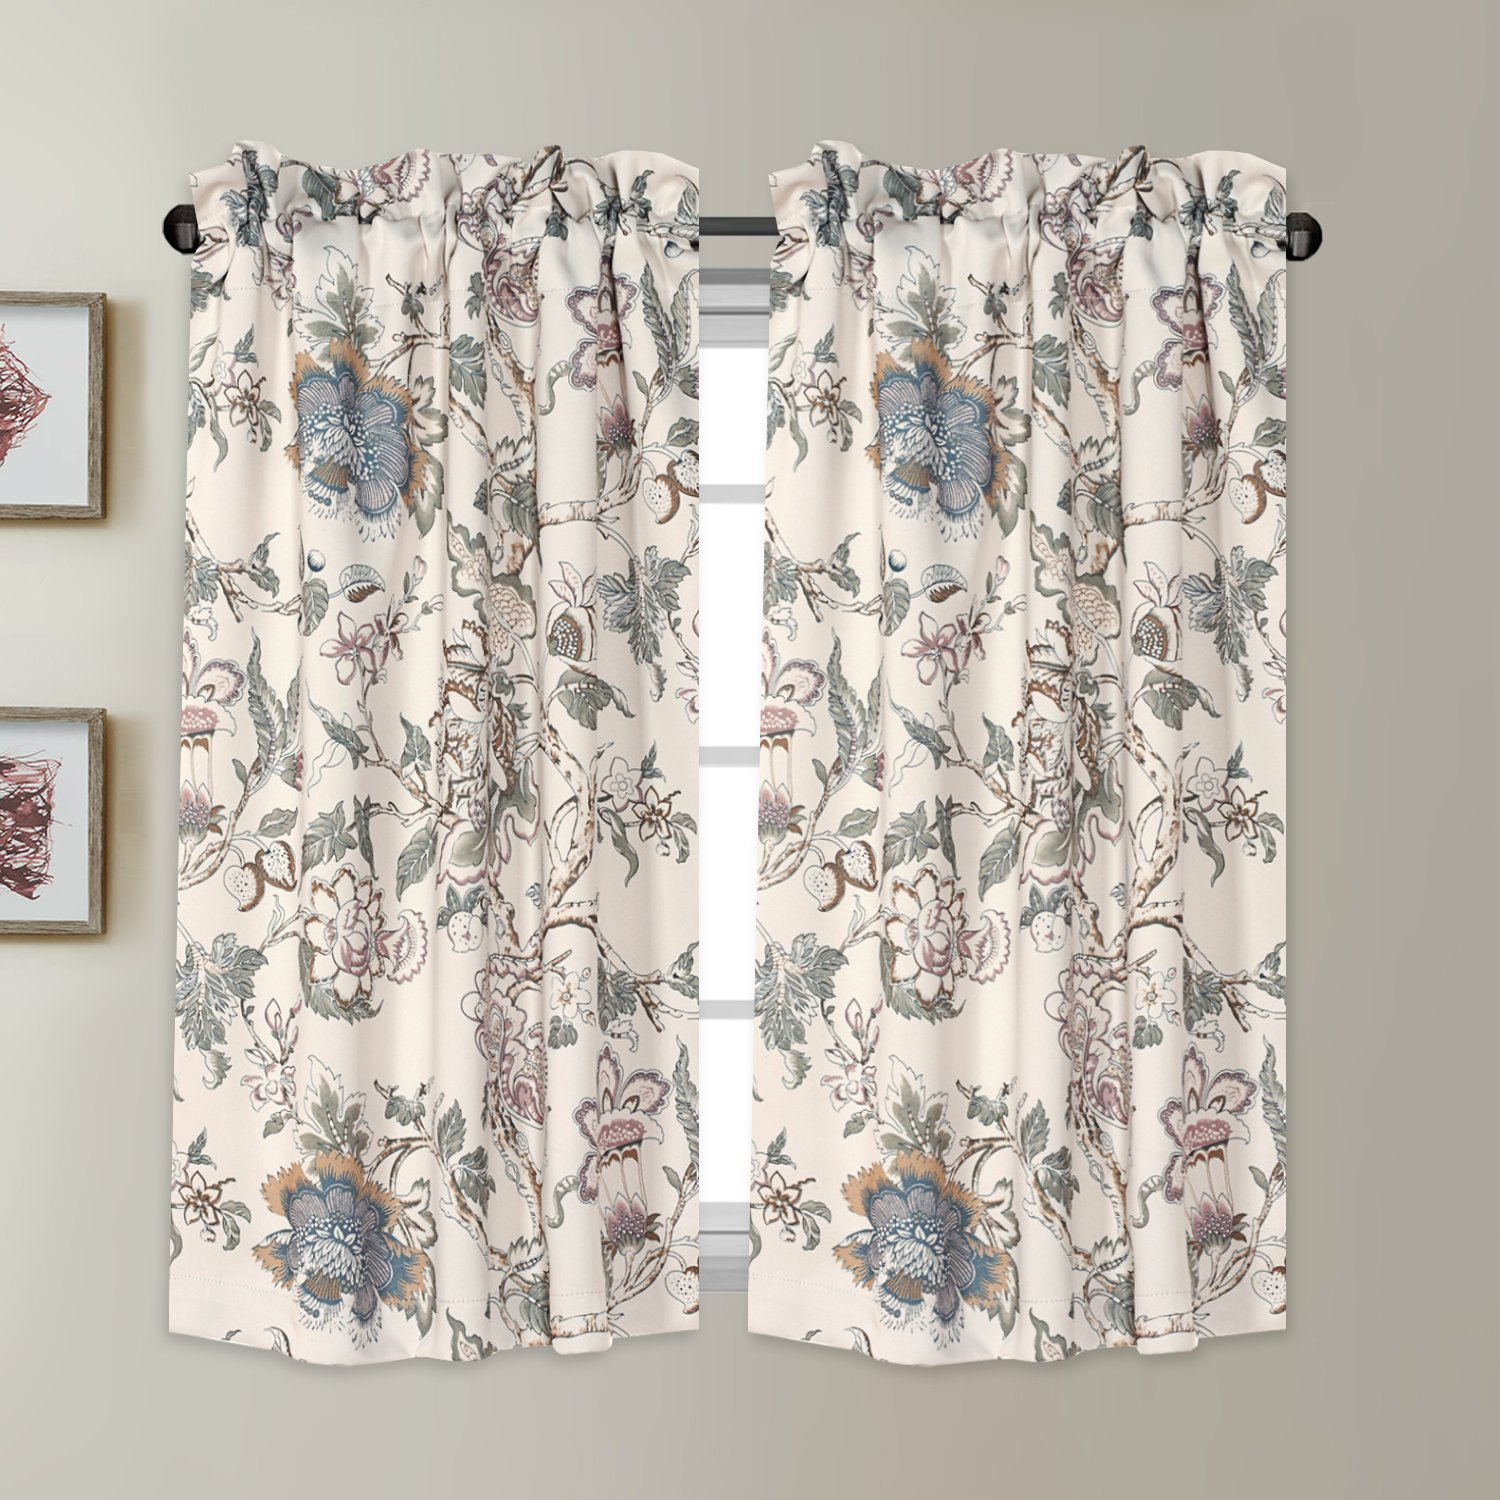 "Blackout Energy Saving Ultra Soft Casual Kitchen Curtains Rod Pocket Window Curtain Tiers for Café, Bath, Laundry, Bedroom - Vintage Floral Pattern in Sage and Brown - (58""W x 45""L Pair)"